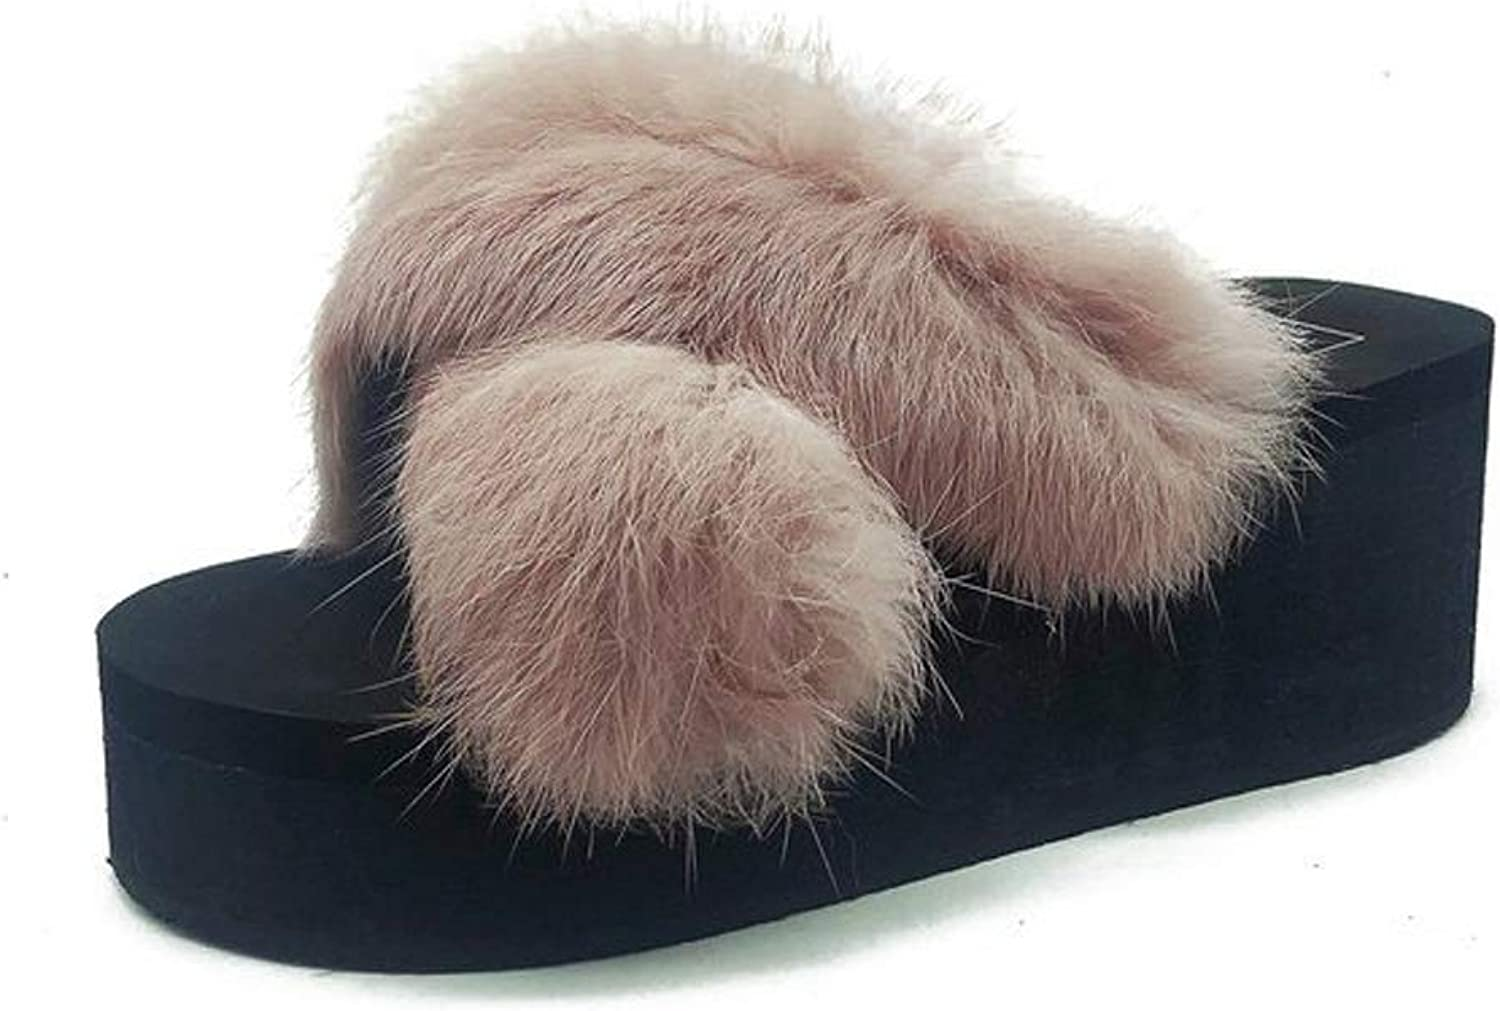 Womens Slippers Faux Plush Wedge Heel Slippers & Flip-Flops with Open Toe Home Outdoor shoes for Fall Winter